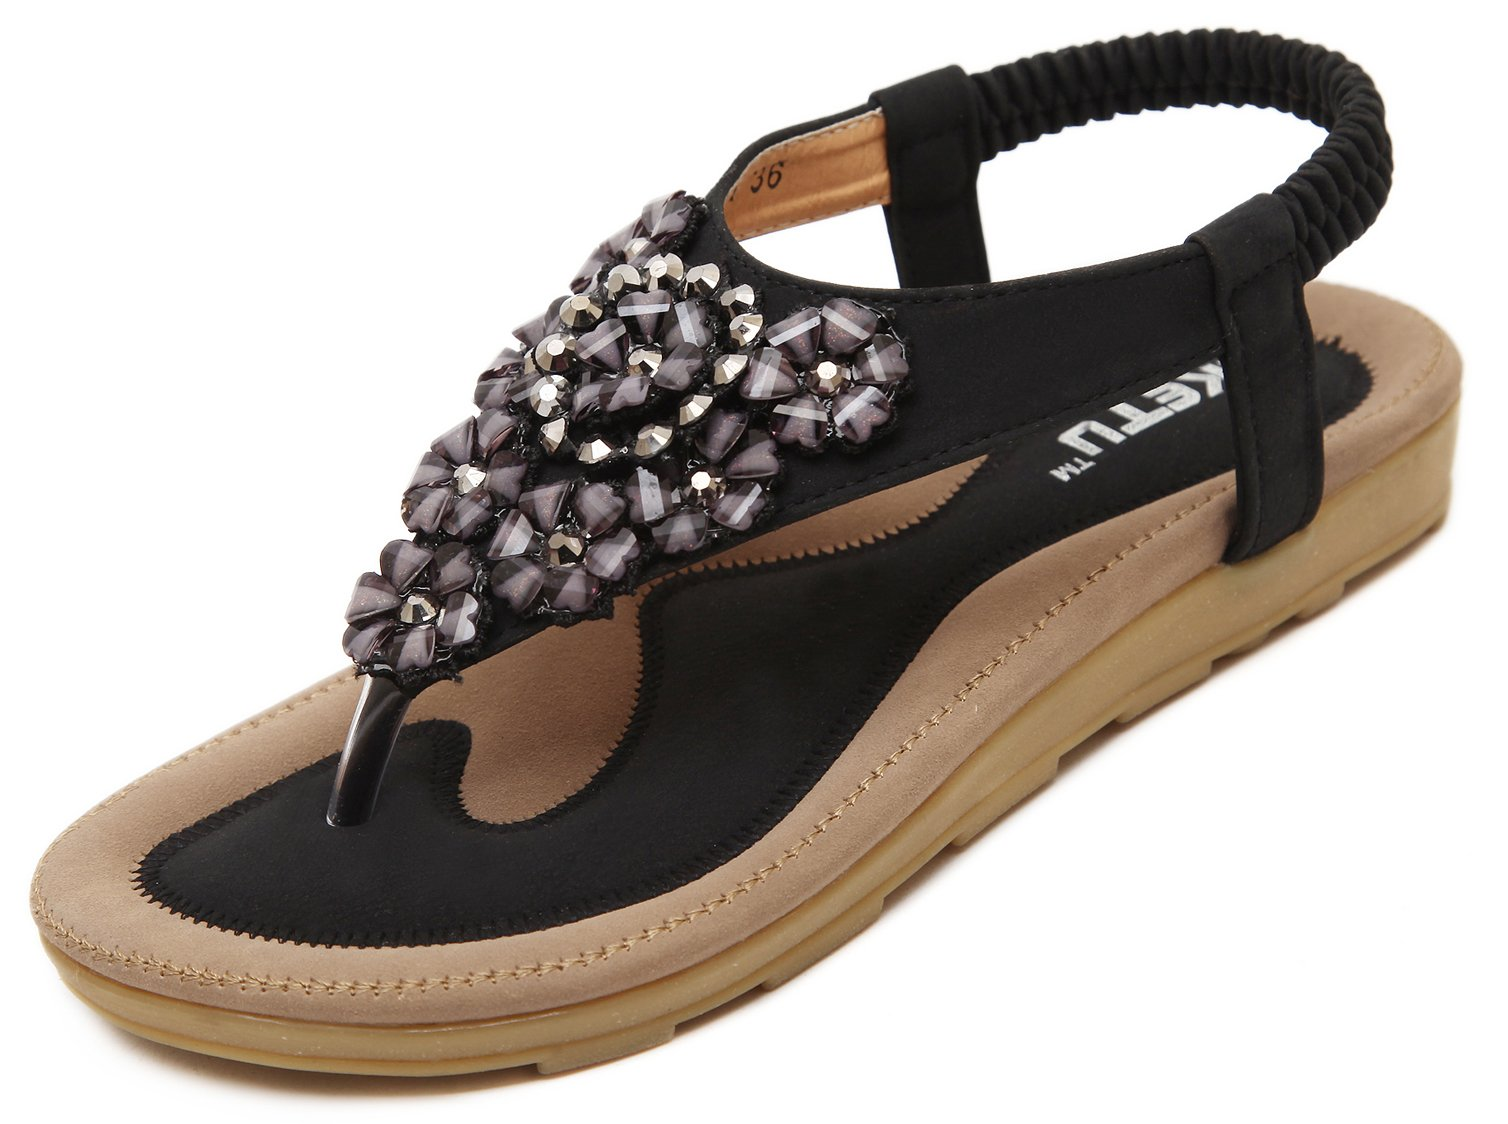 Women's Glitter T-Strap Sandals, Bohemian Summer Flat Sandals, Black Floral Rhinestone Gem Elastic Back Strap, Comfy Shoes Dressy Casual Jeans Daily Wear Beach Holiday Vacation Everyday Blingbling